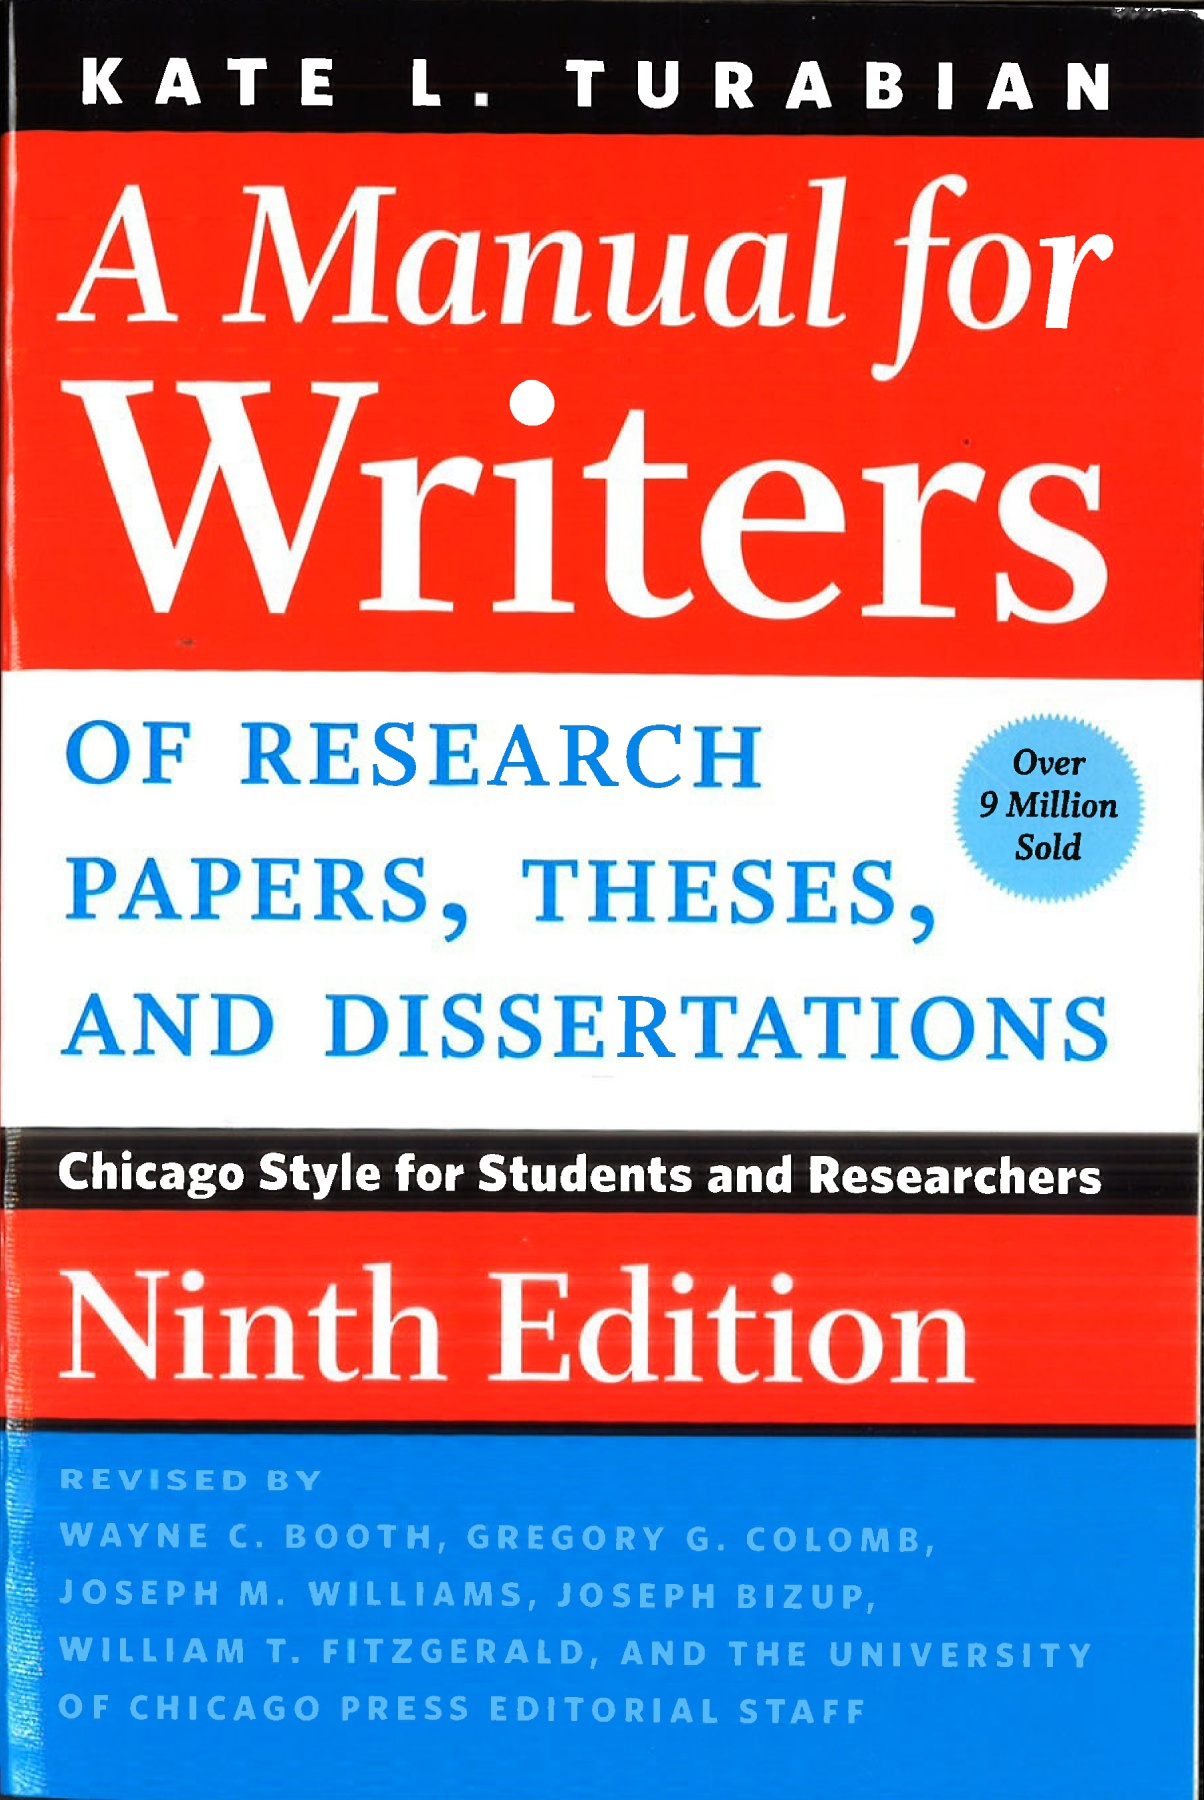 008 Research Paper Manual For Writers Of Papers Theses And Sensational A Dissertations Ed. 8 8th Edition Ninth Pdf Full